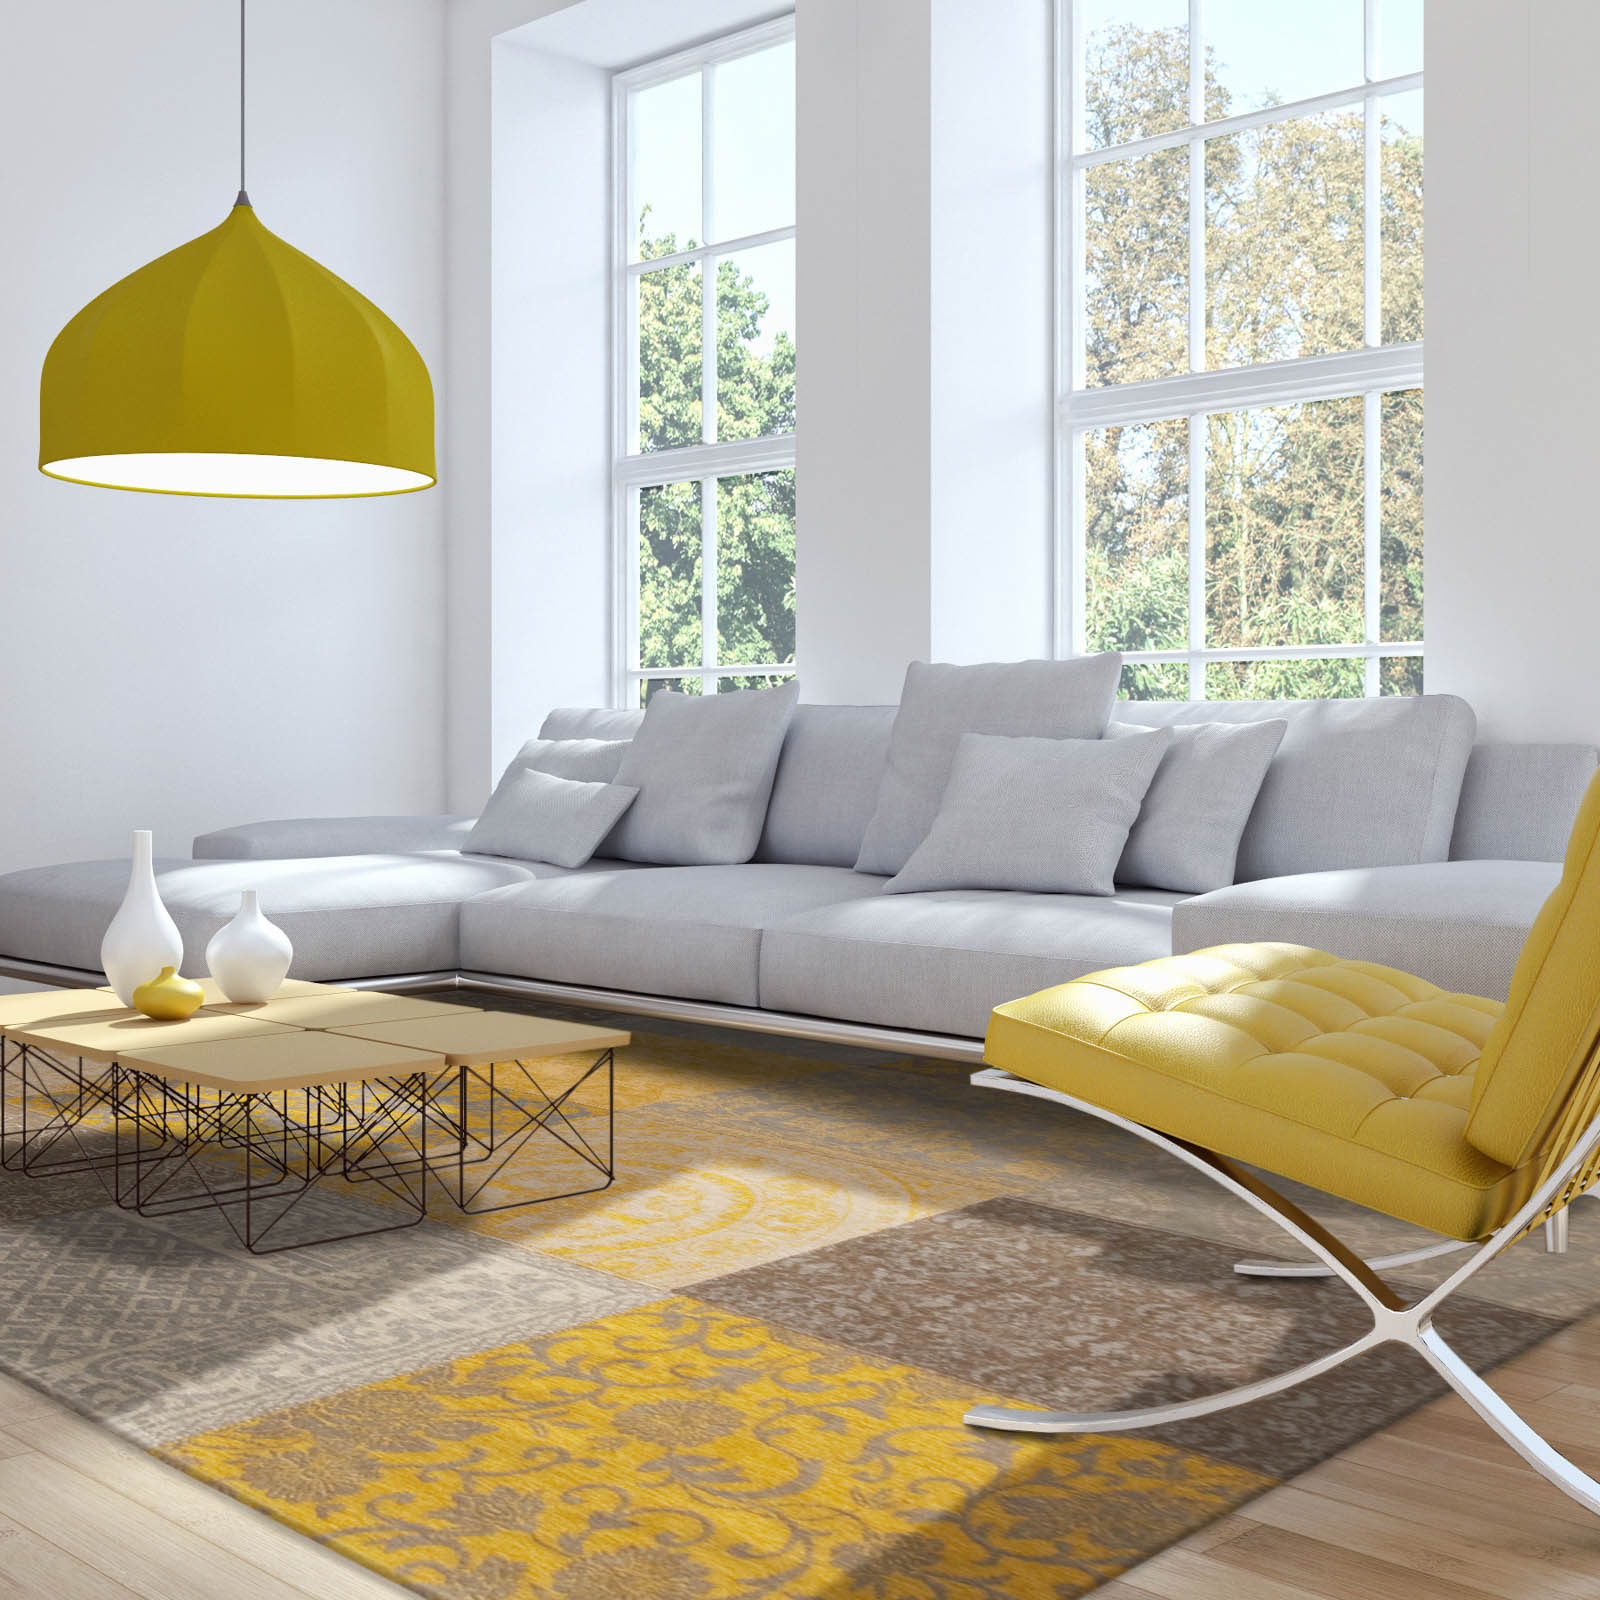 Louis de poortere rugs vintage multi 8084 yellow free uk - Gold rugs for living room ...